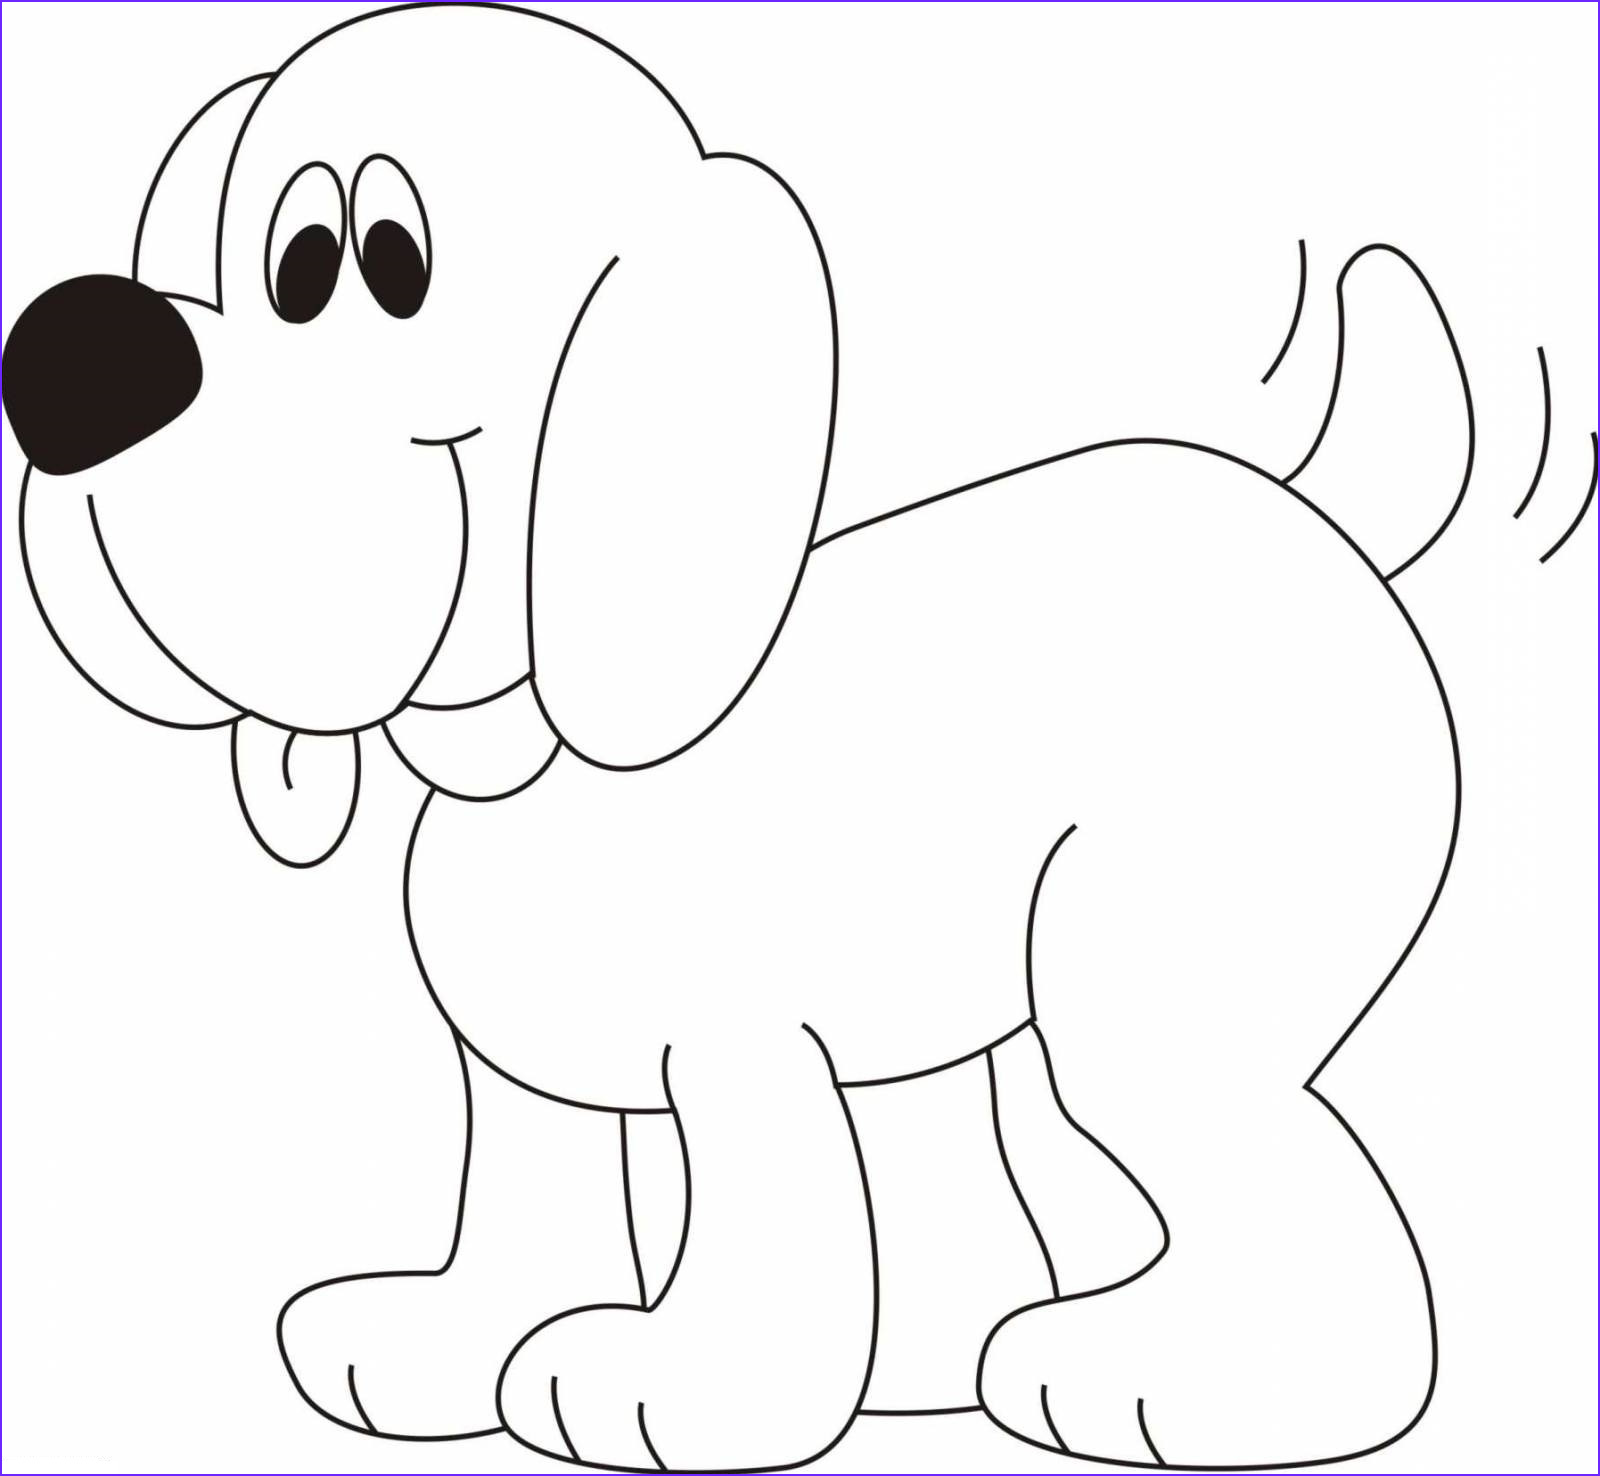 Puppy Coloring Page Cool Stock Dog Coloring Pages for Kids Preschool and Kindergarten